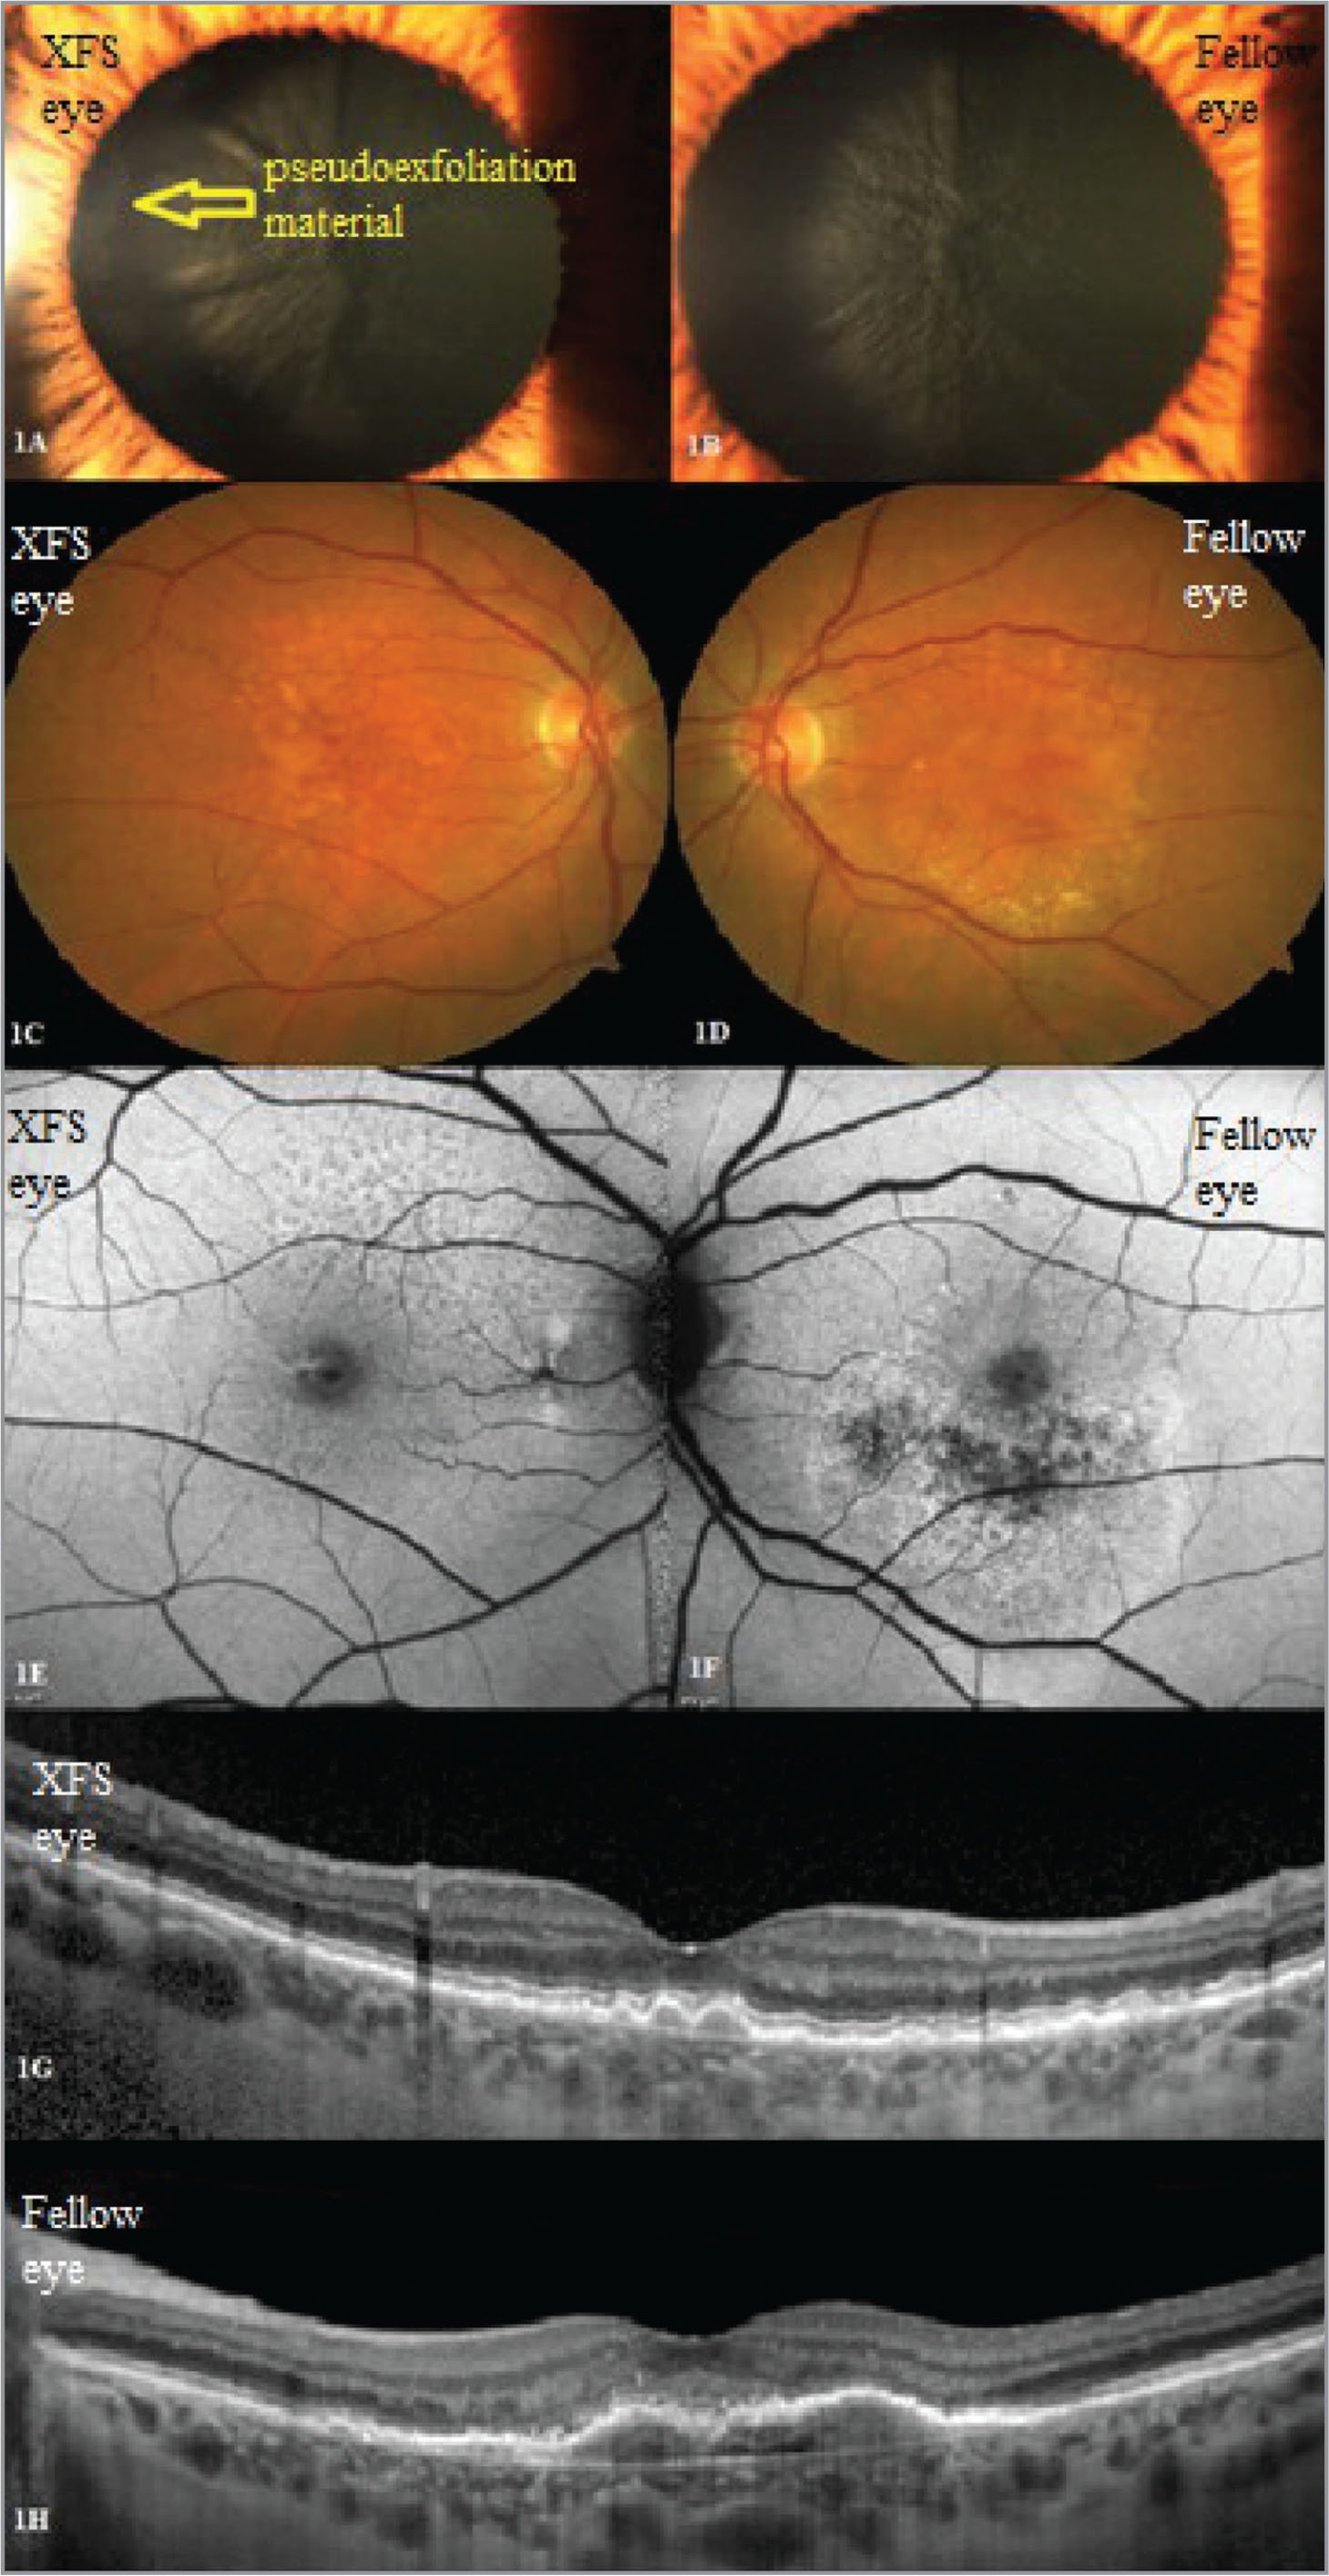 Representative images including the anterior segment, color fundus, fundus autofluorescence, and optical coherence tomography of a patient with clinically unilateral pseudoexfoliation syndrome (XFS) and bilateral age-related macular degeneration (AMD). (A, C, E, and G) (Right eye): Eye with clinically unilateral XFS (arrow) and intermediate AMD. (B, D, F, and H) (Left eye): Non-XFS fellow eye with wet AMD.